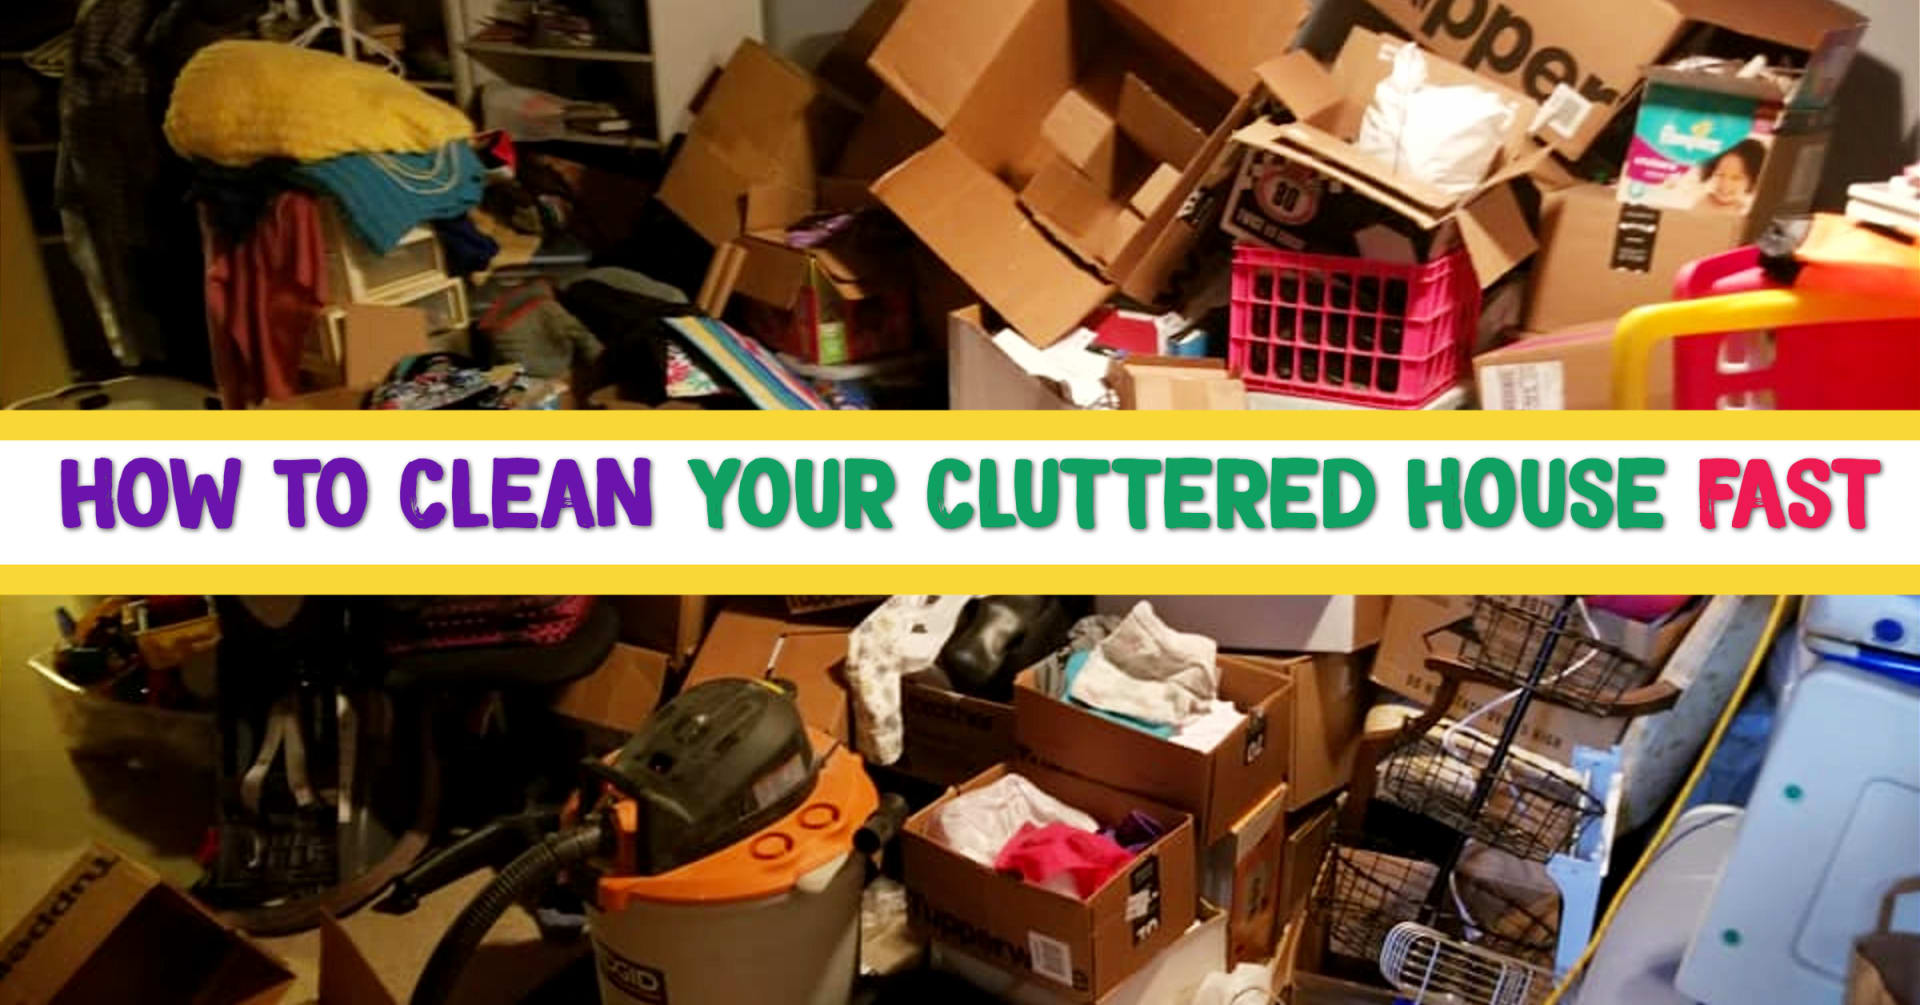 how to clean a cluttered messy house fast